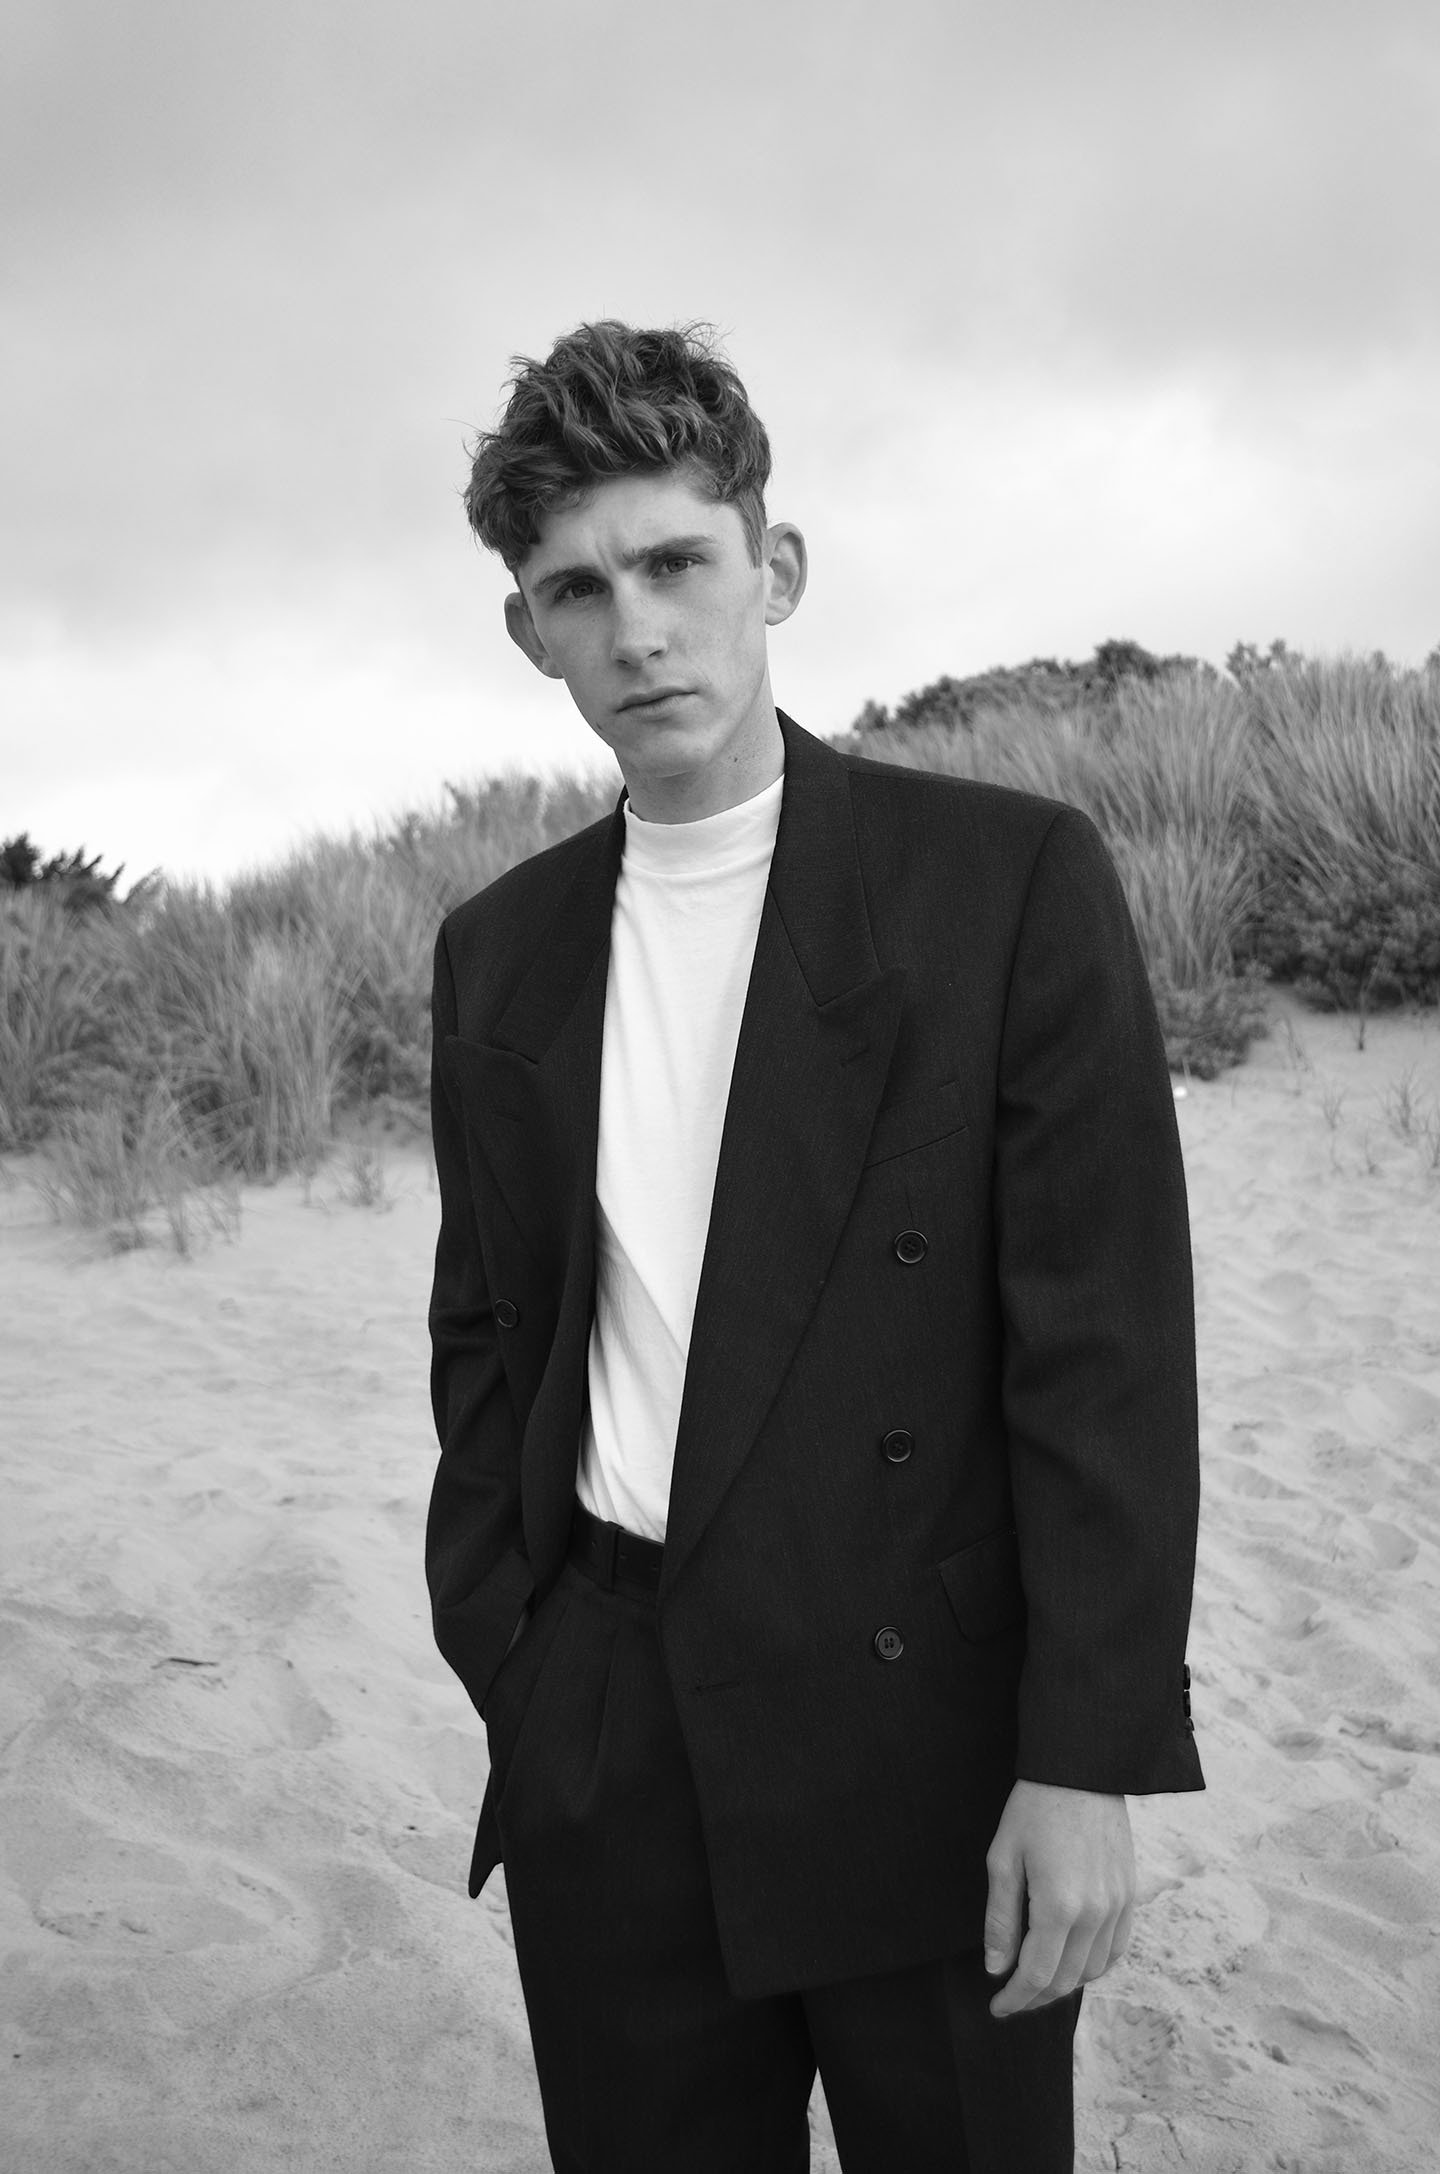 Black and white portrait of Irish actor Fionn O'Shea standing on the stands wearing black suite and trousers - photo by India Mullen